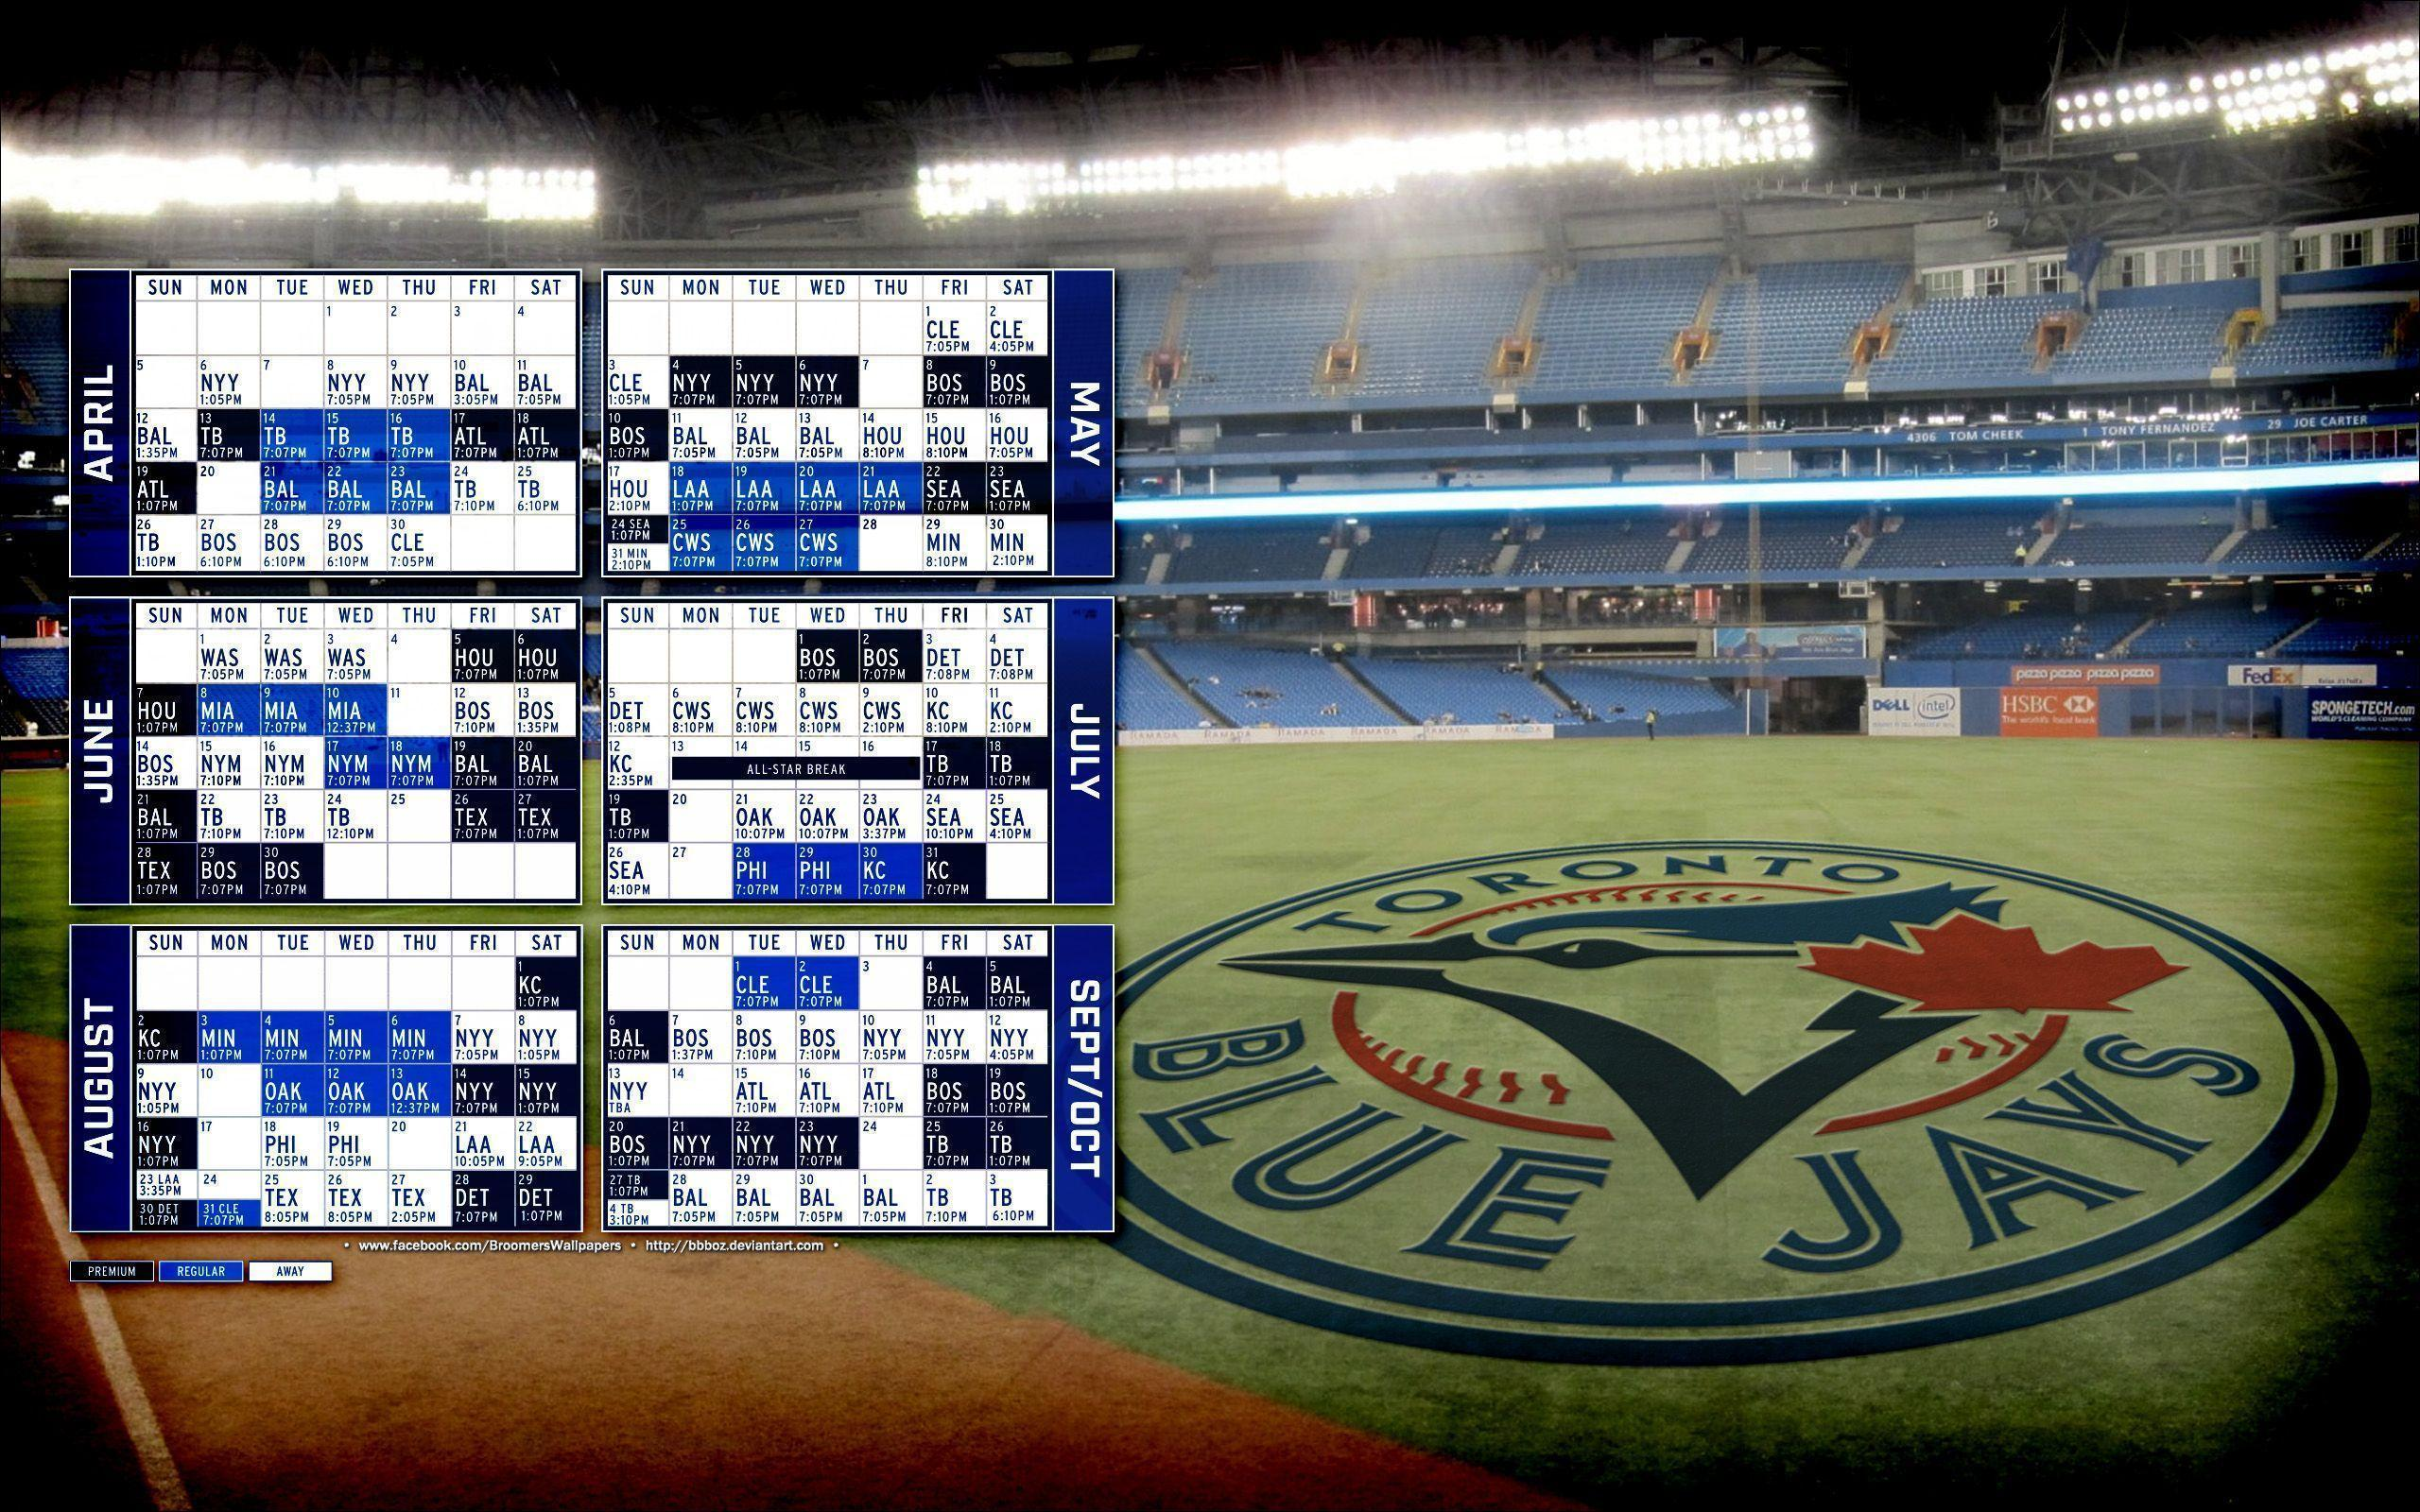 2015 Toronto Blue Jays schedule Wallpapers 16x10 by bbboz